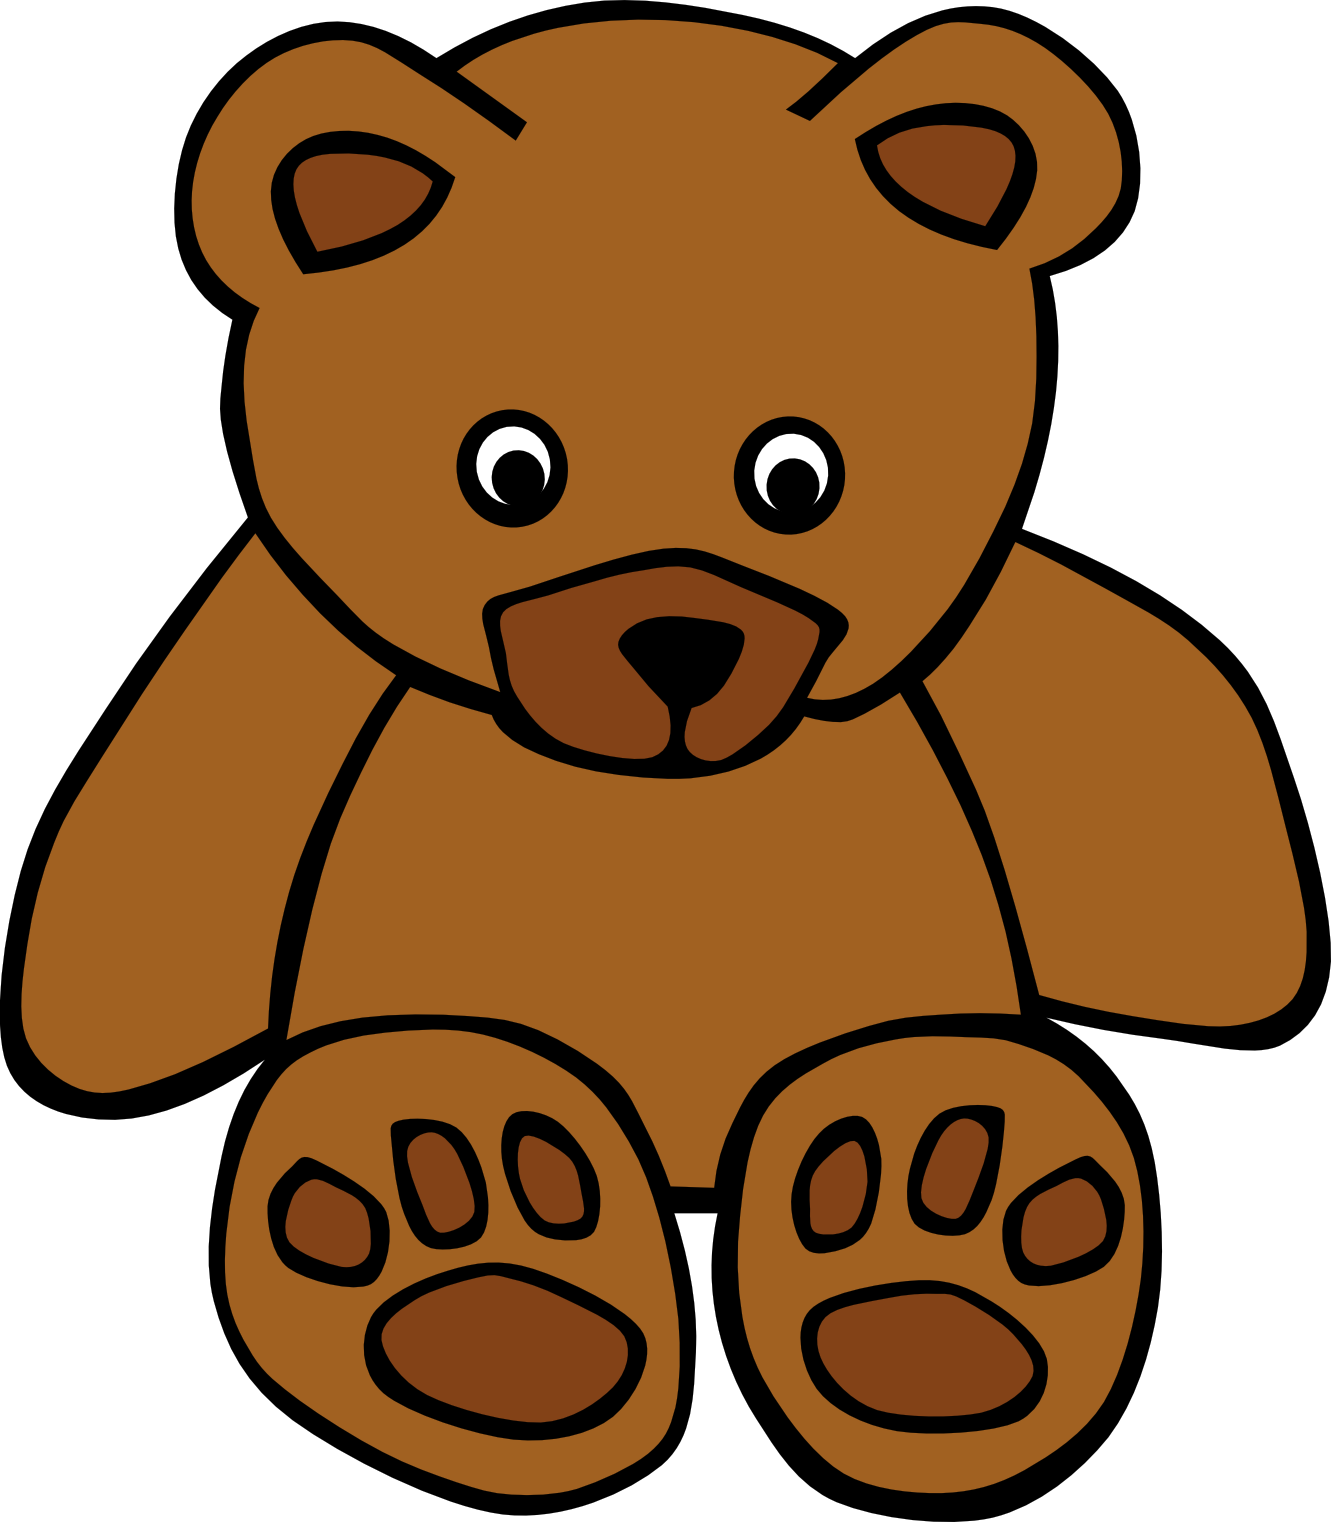 Stuffed Animal clipart #19, Download drawings